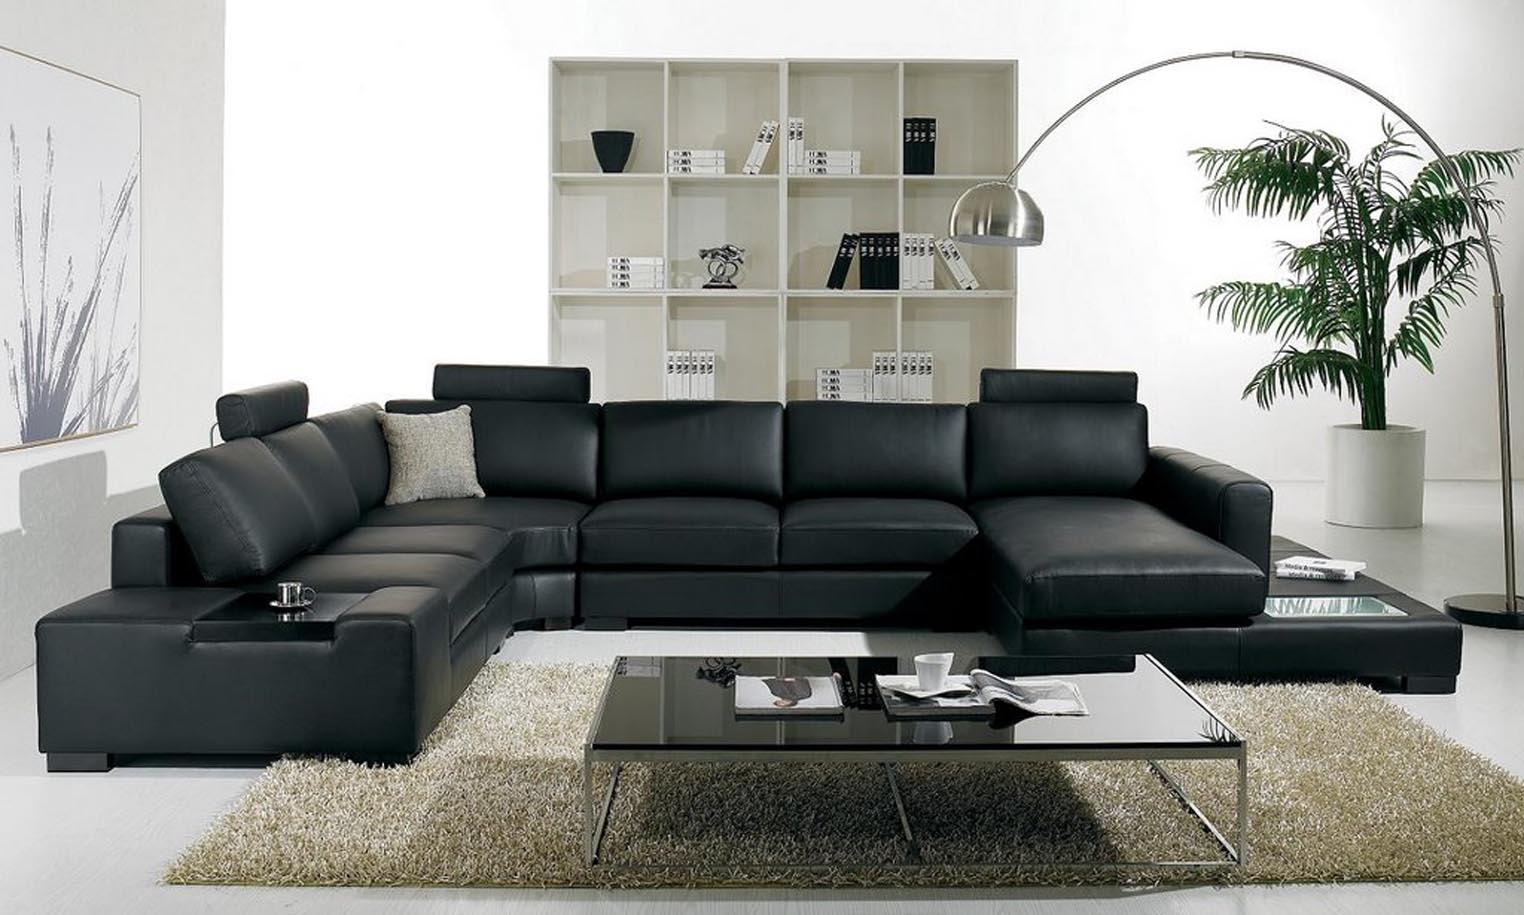 http://www.hgnv.com/wp-content/uploads/2014/11/Luxury-Black-Leather-Sectional-Sofa-For-Living-Room-Interior-Decoration-With-Cool-Glass-Top-Coffee-Table.jpg